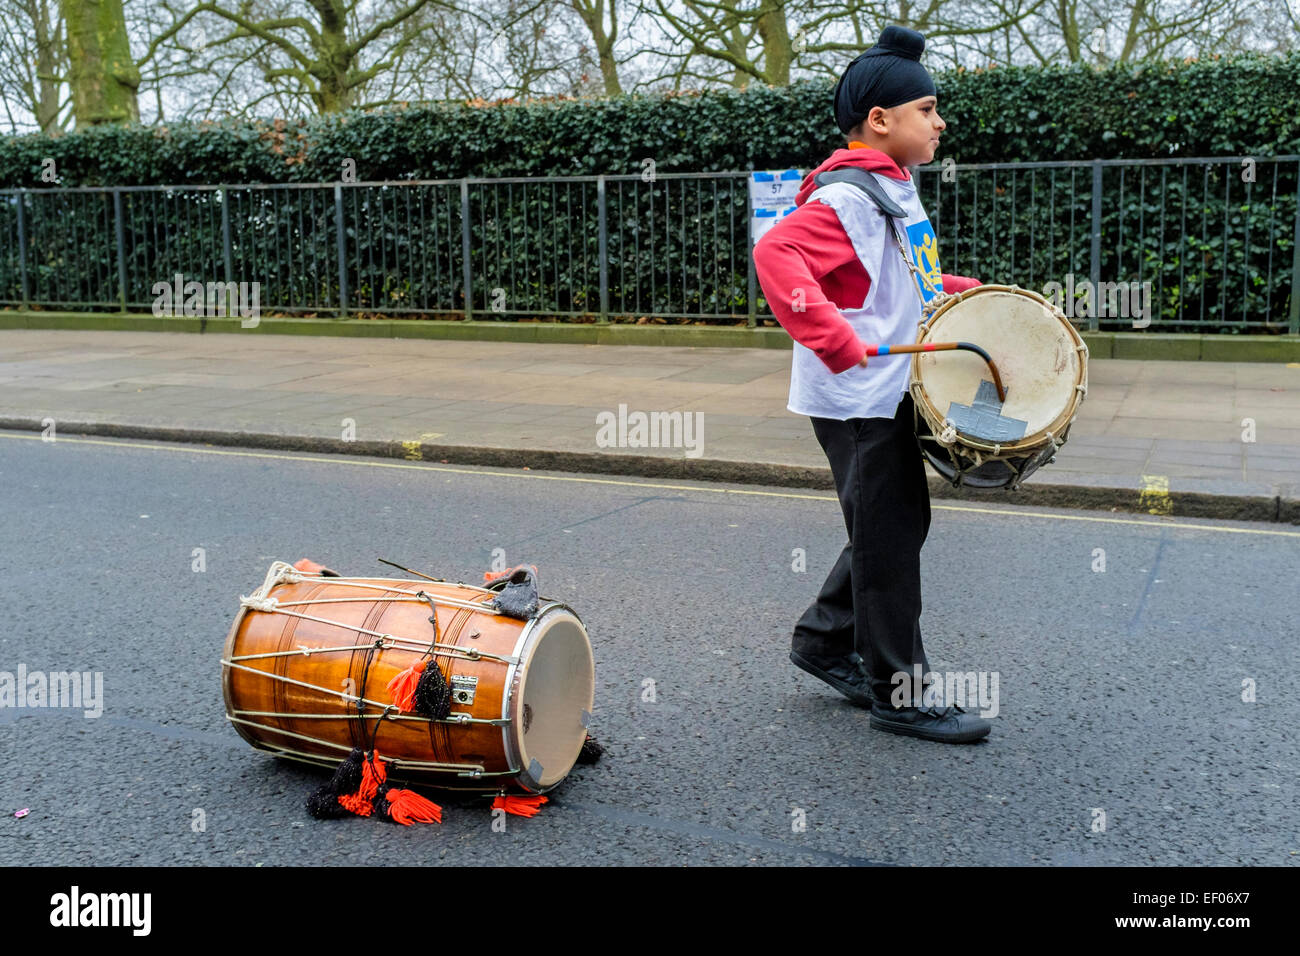 A young Borough of Lewisham drummer prepares to participate in London 2015 New Year's Day Parade - Stock Image